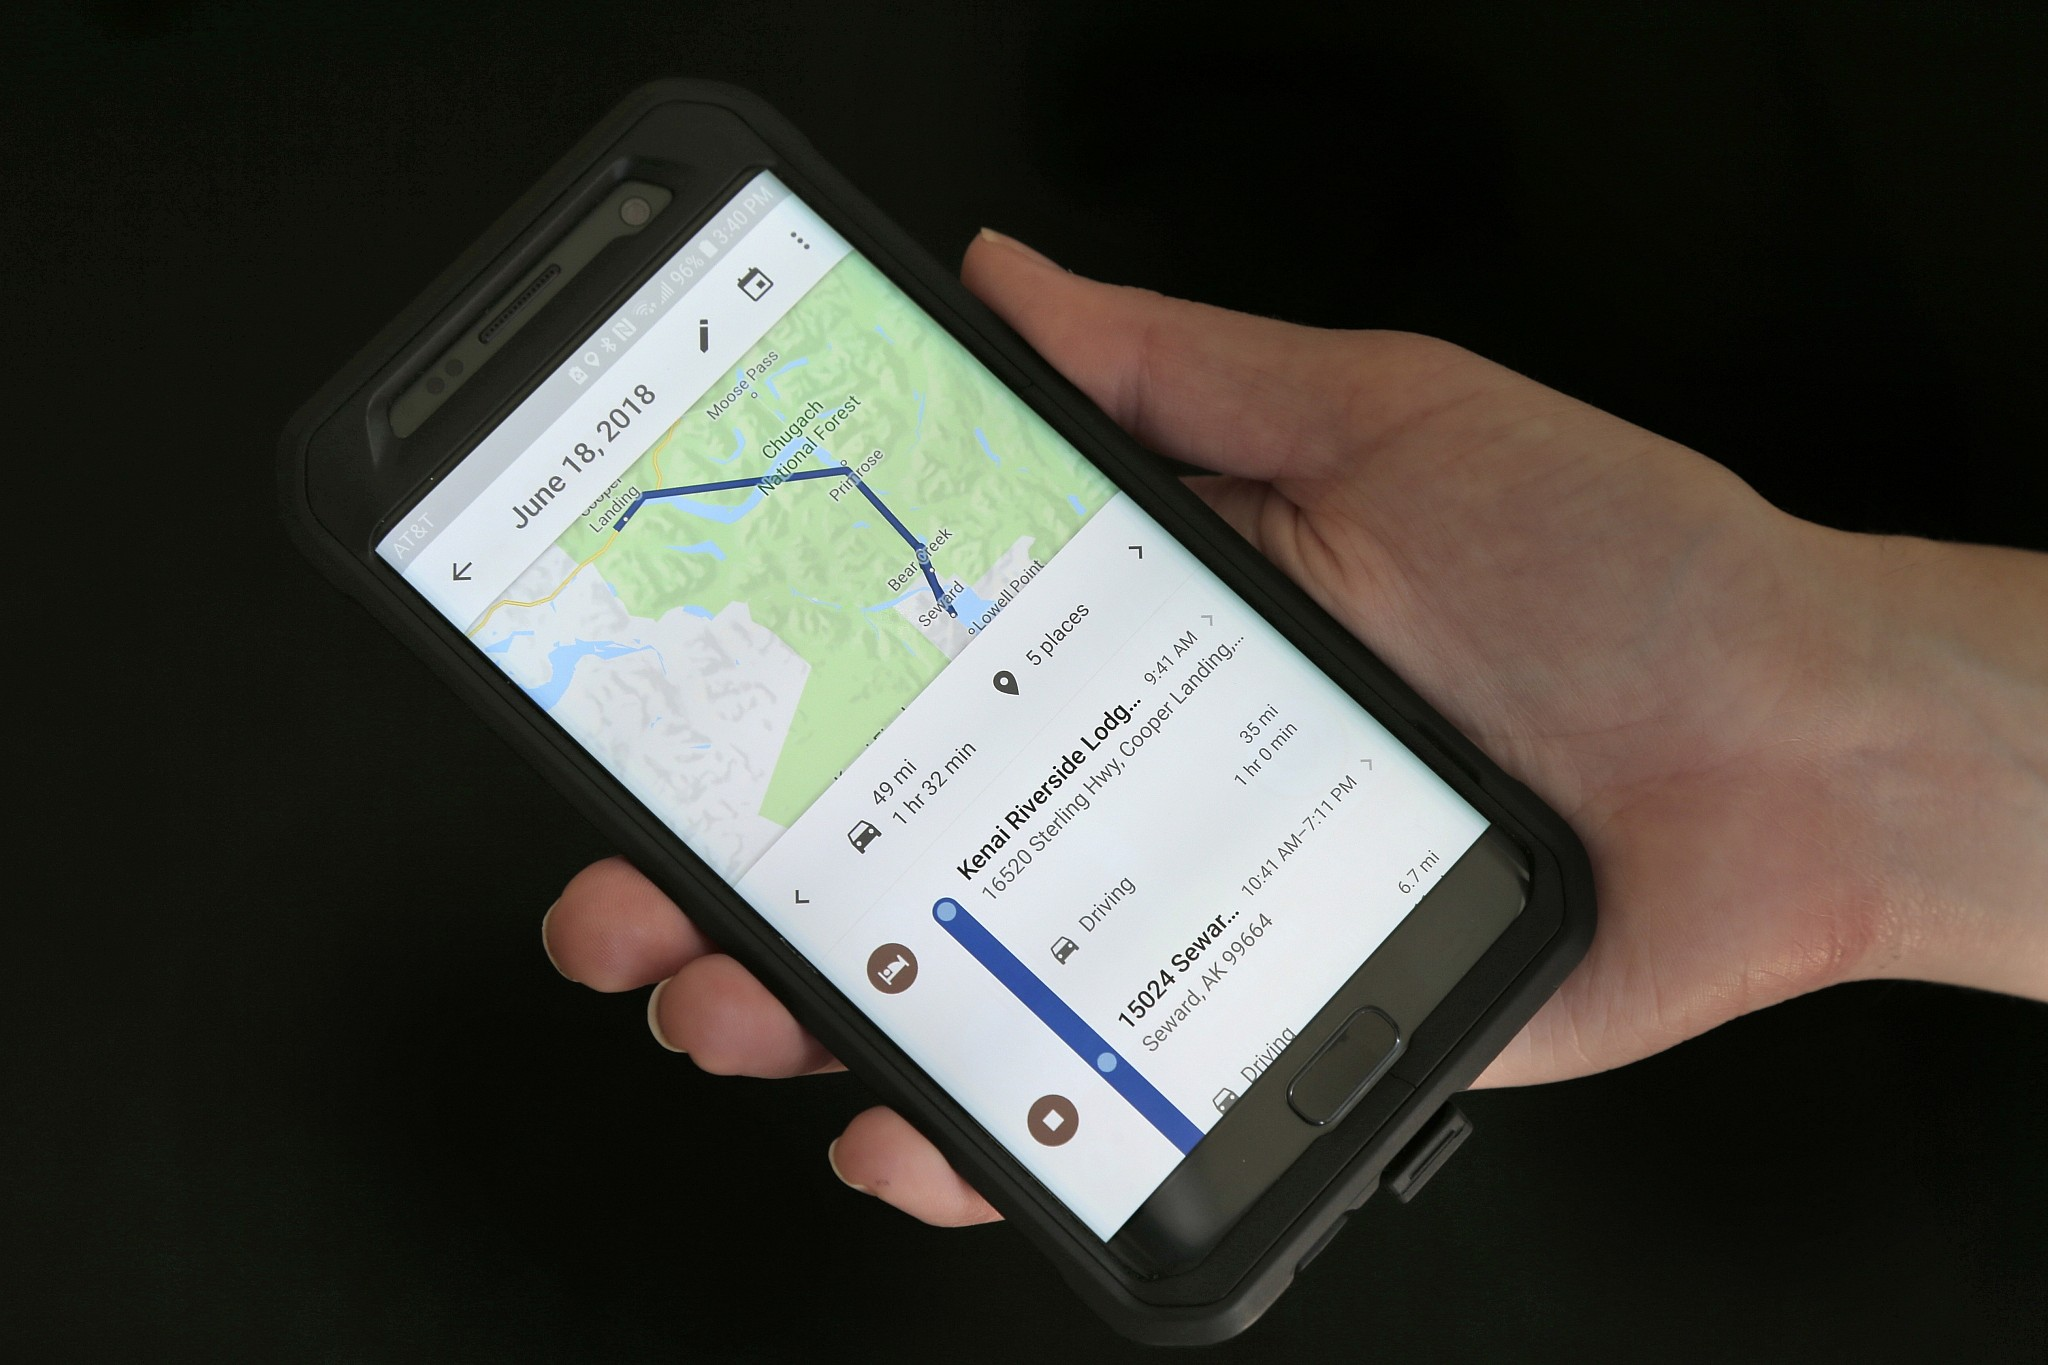 Google Opens Up About Location Data Collection